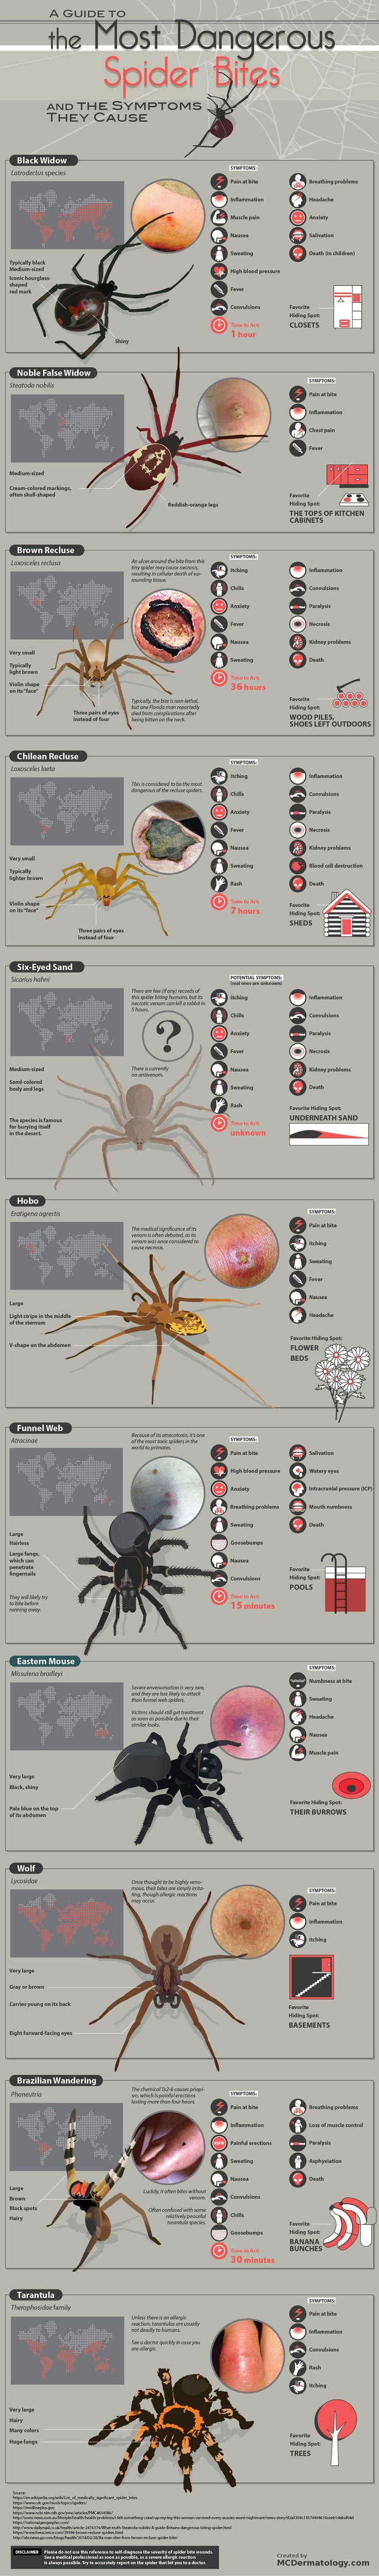 The Most Dangerous Spider Bites & Symptoms They Cause